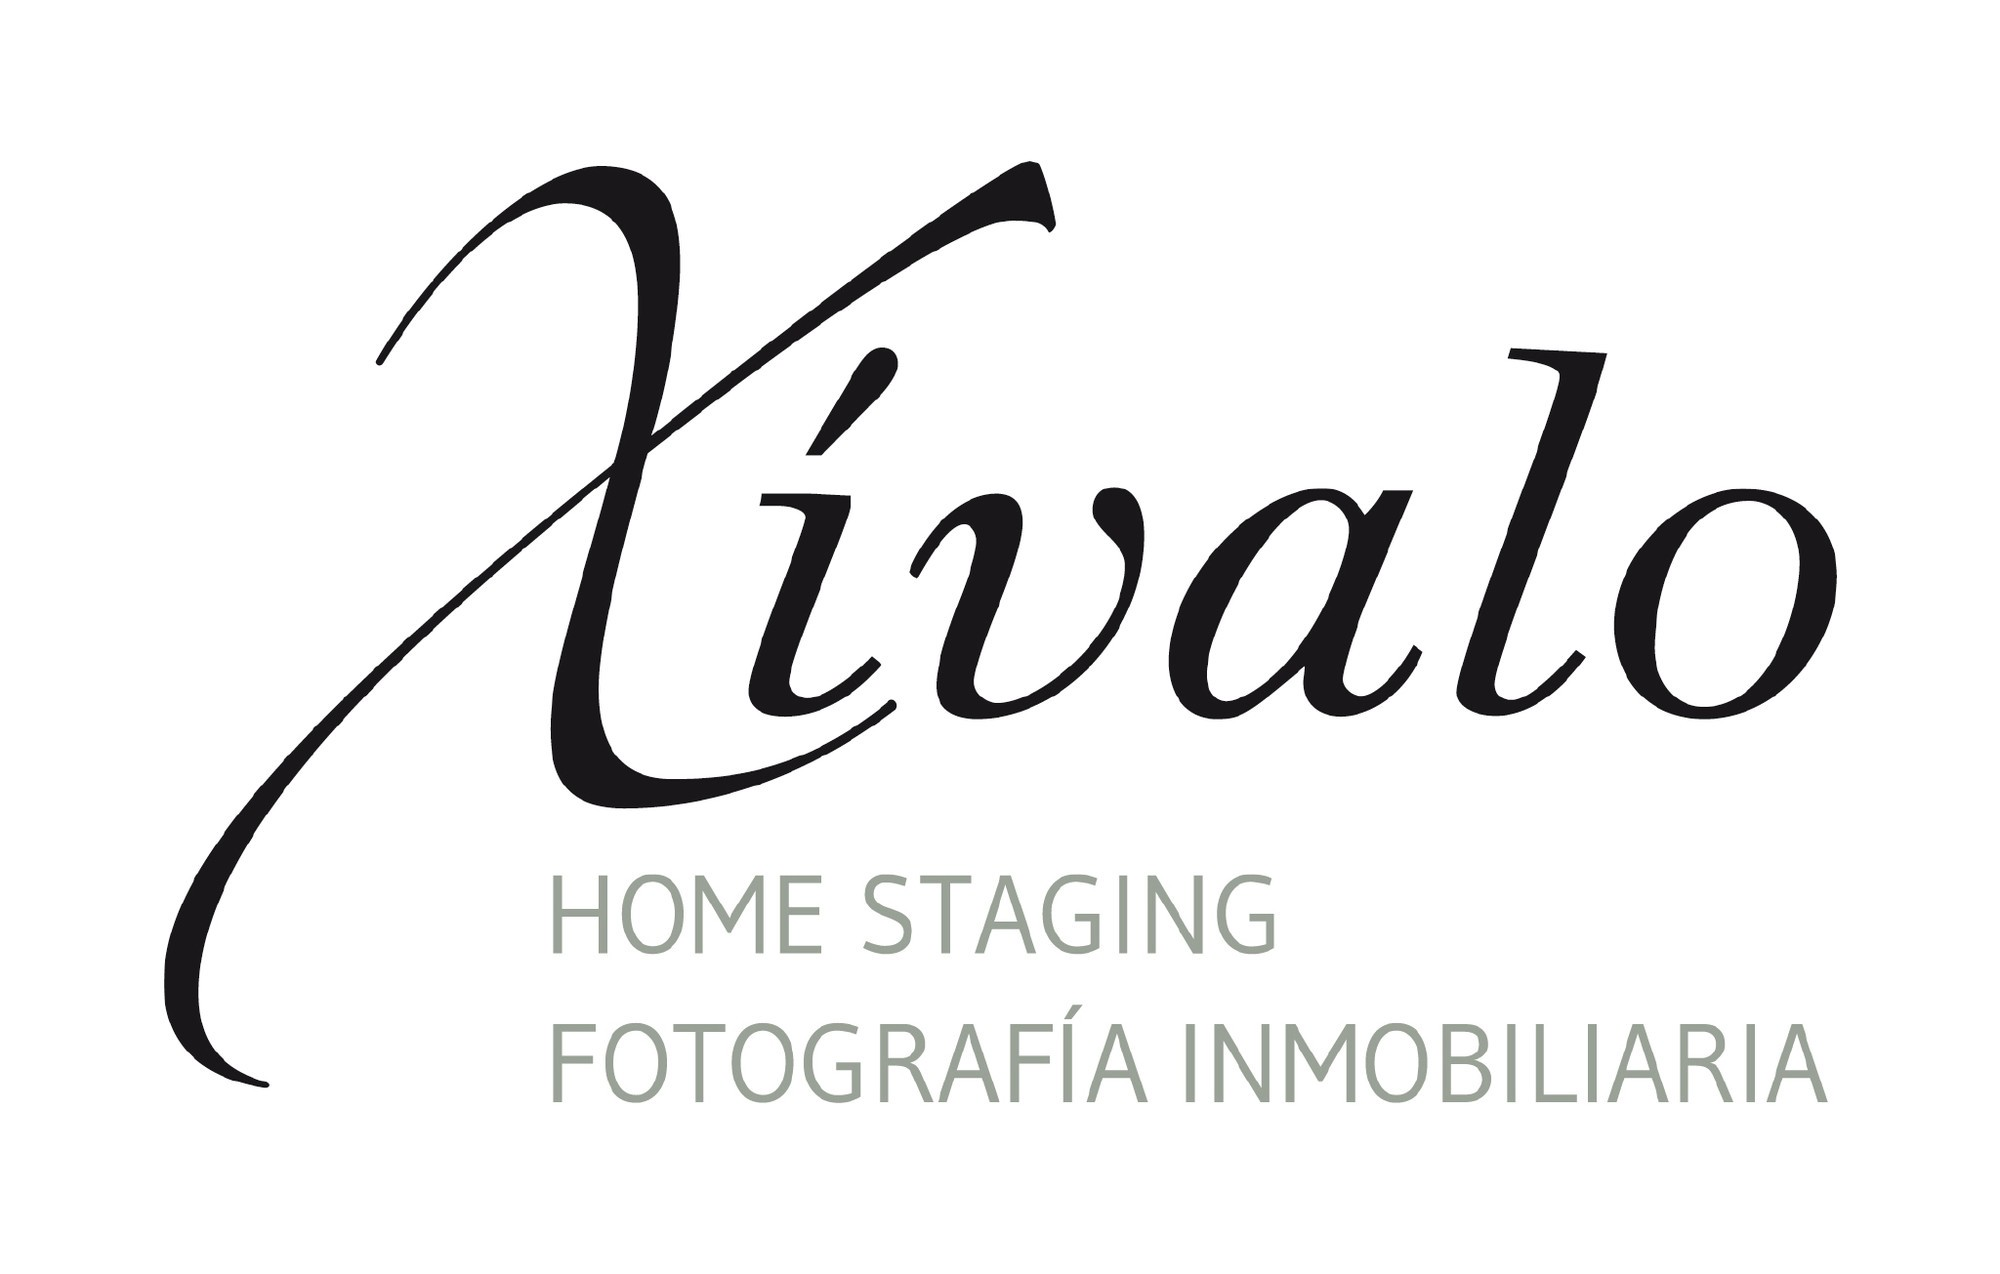 CUBIQZ Xívalo Home Staging